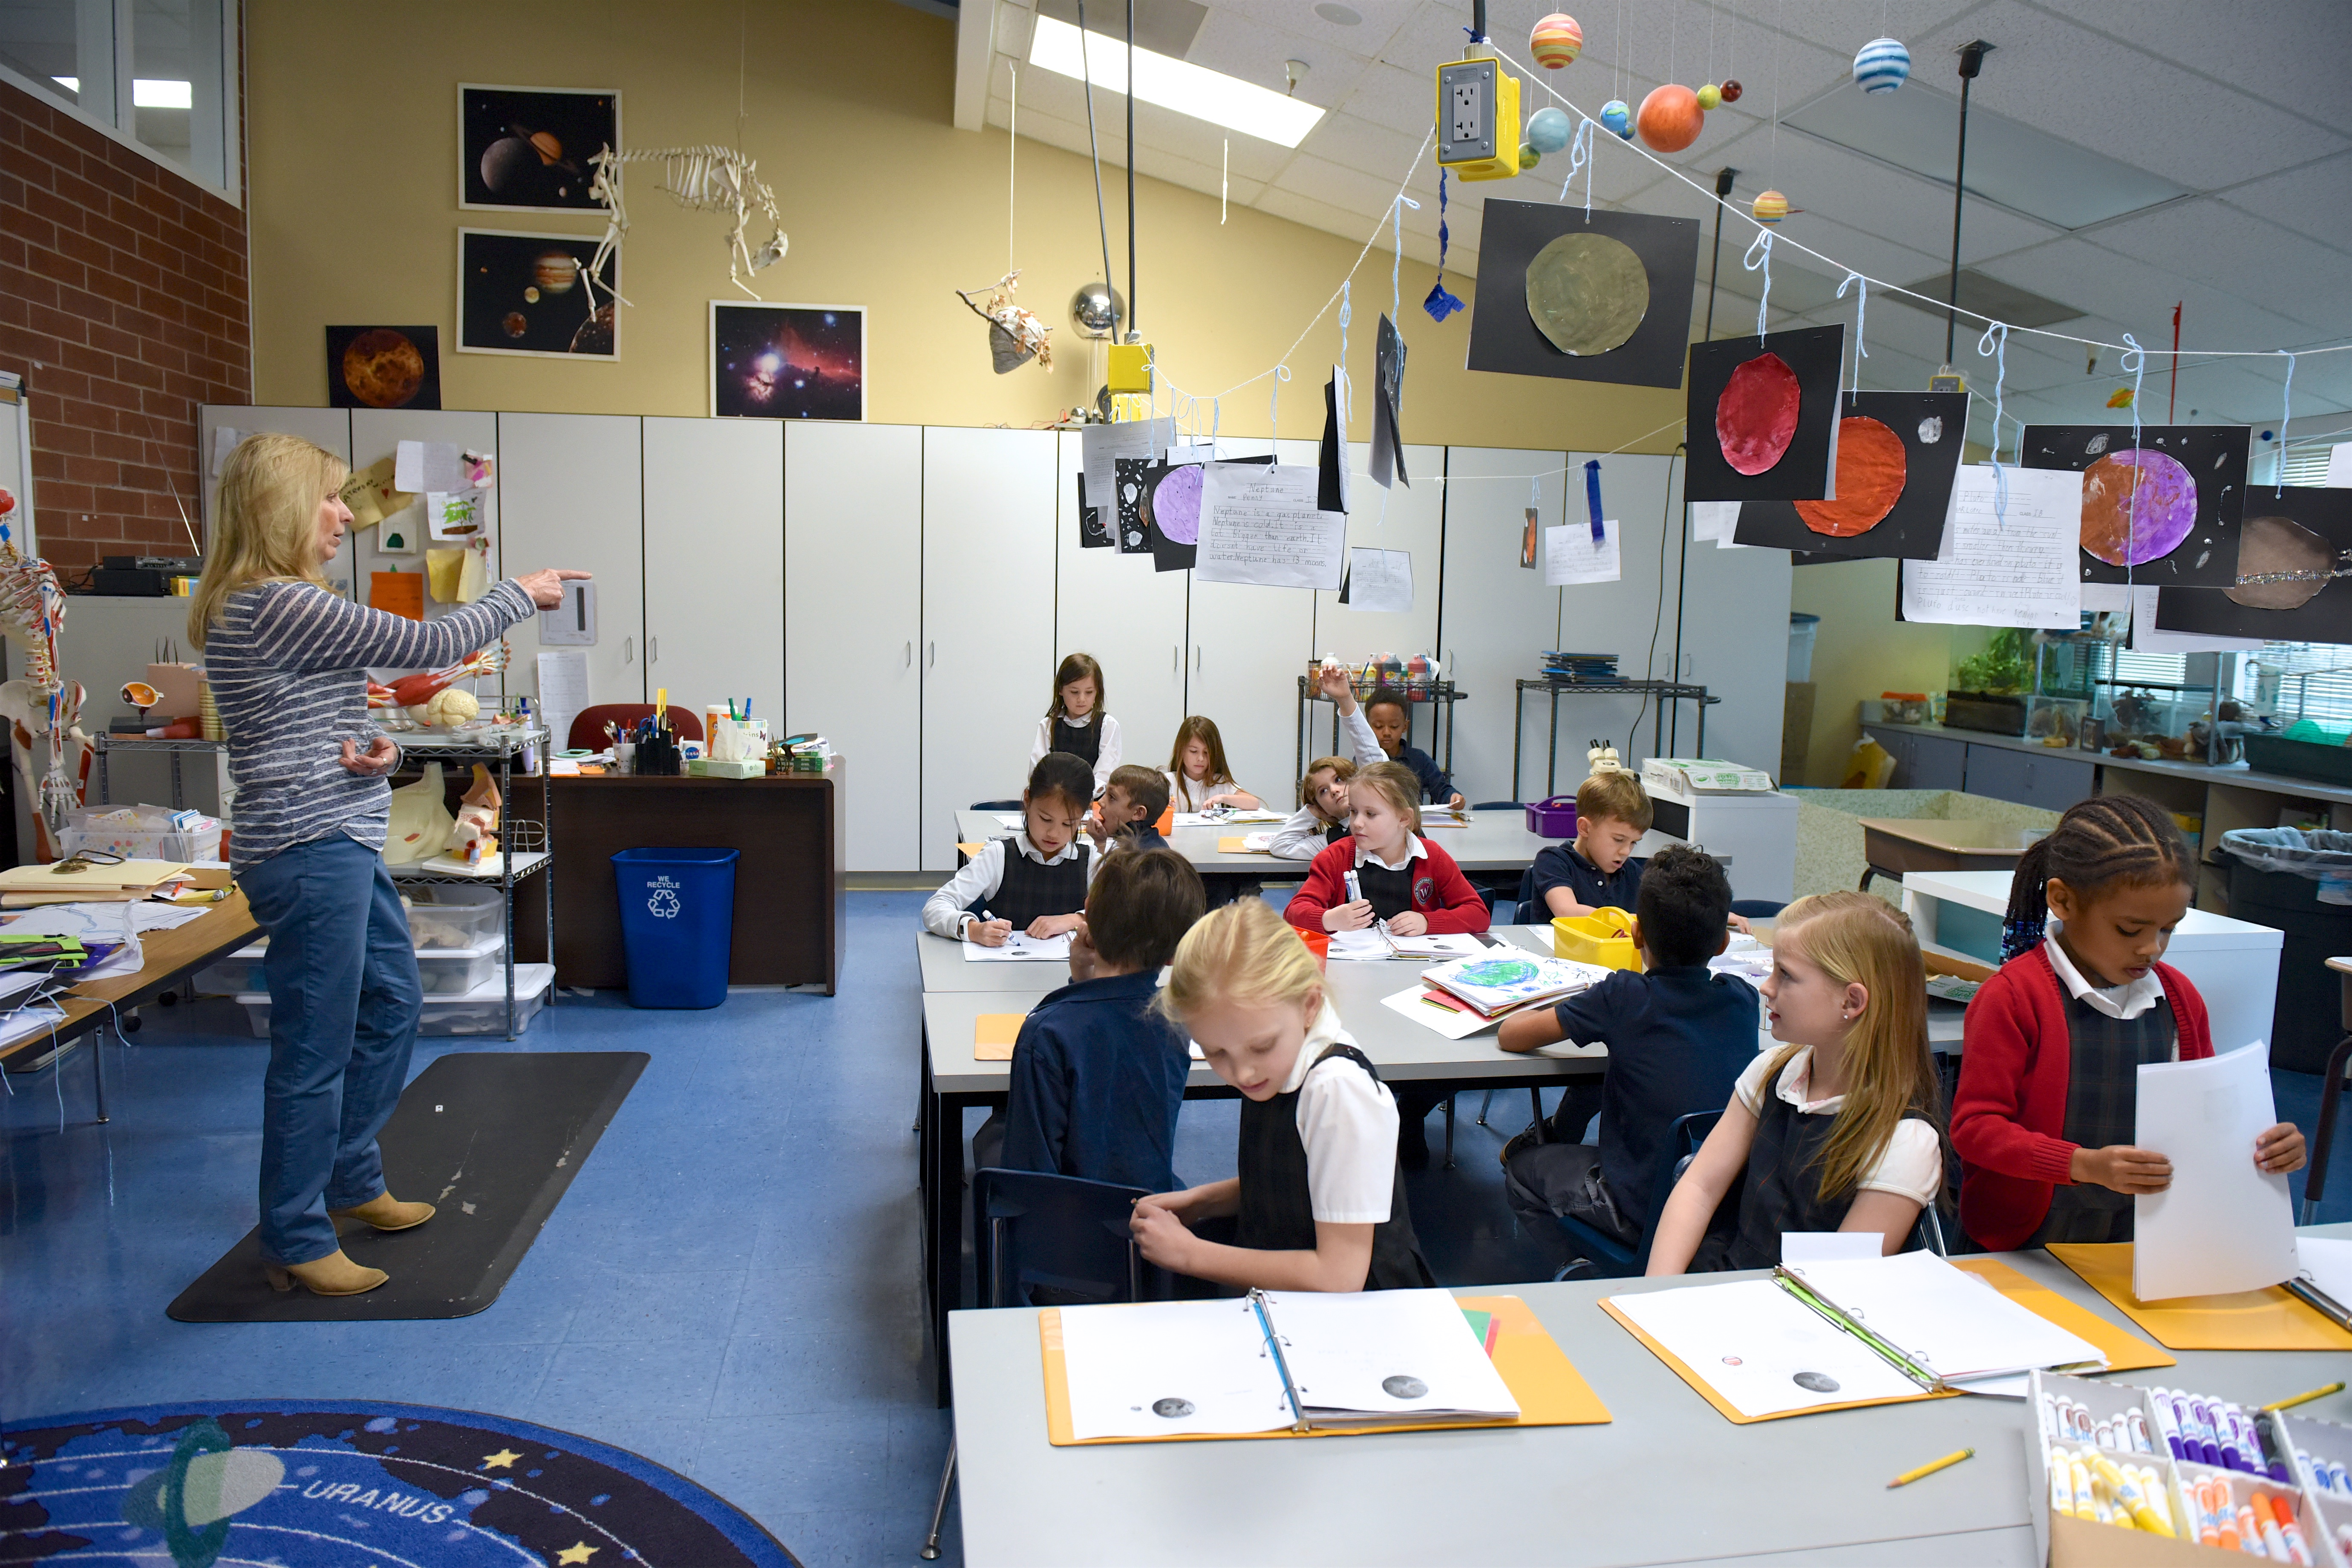 Waterford's Class I science lab is an inviting and stimulating environment that inspires scientific thought and curiosity.